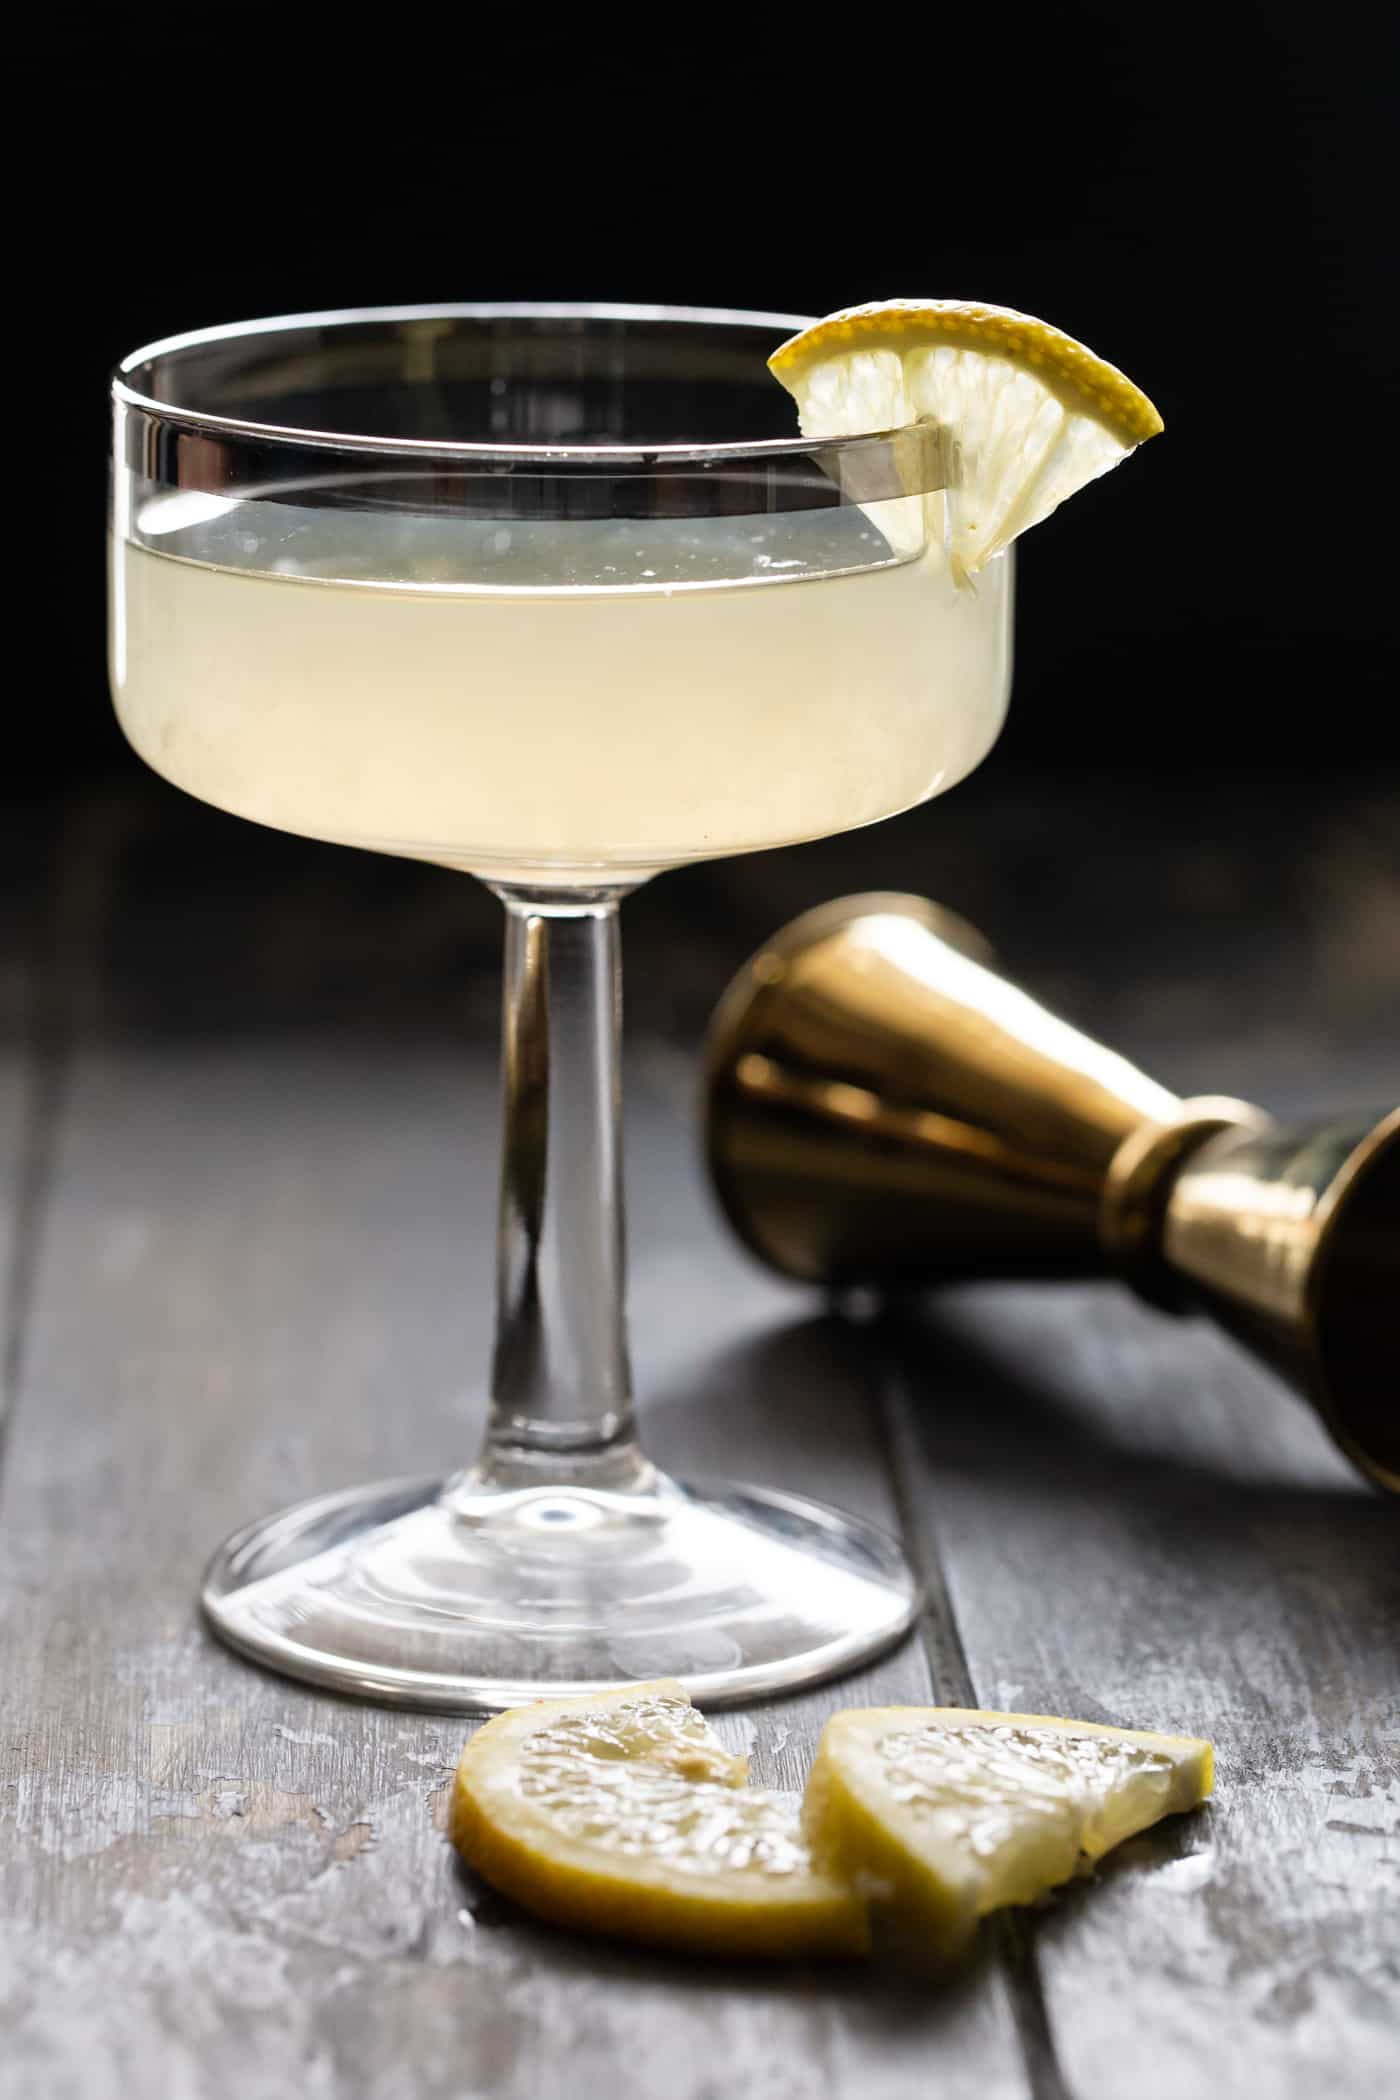 COupe glass filled with Ginger pear Martini recipe and garnished with a small lemon slice. Ona dark background with a gold jigge.